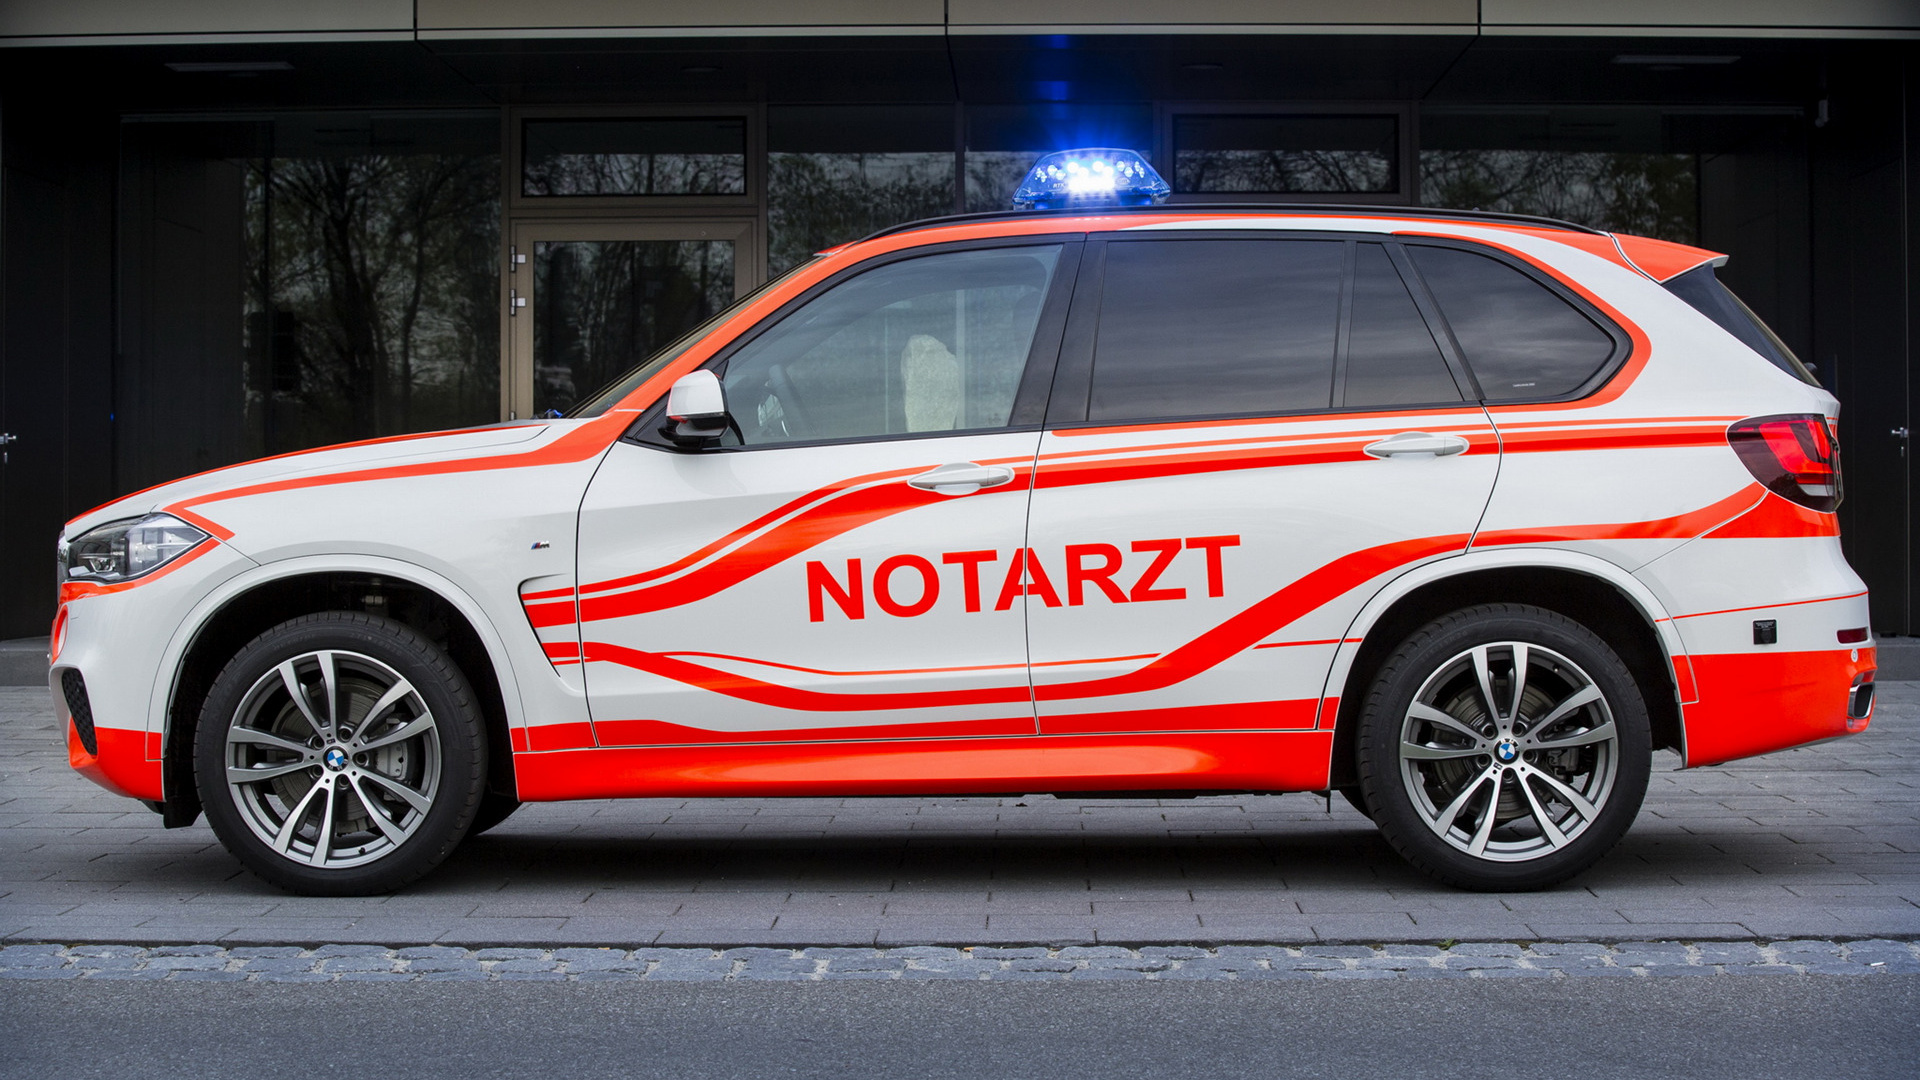 2014 Bmw X5 M Sport Notarzt Wallpapers And Hd Images